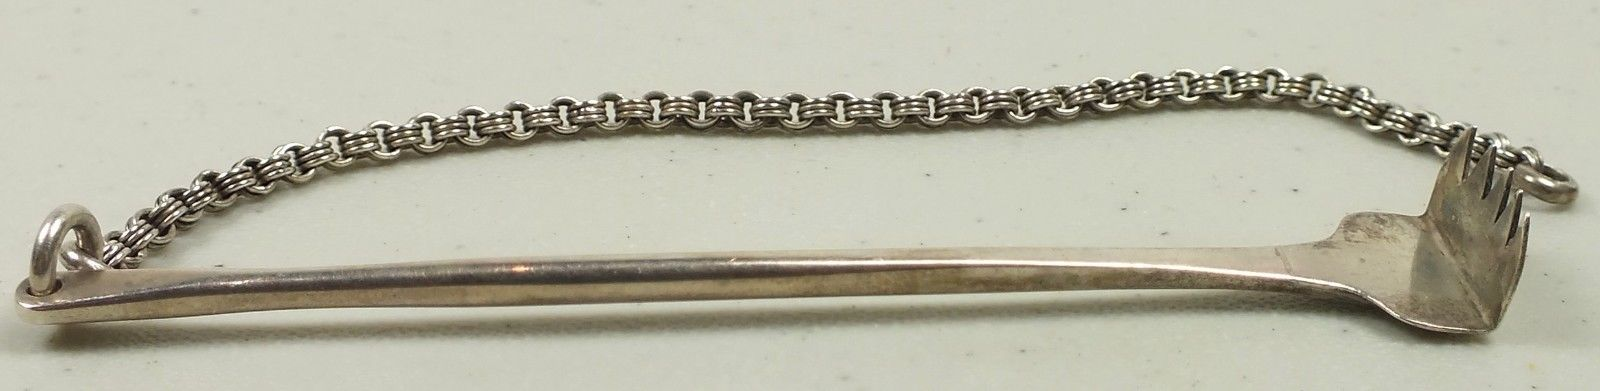 Hallmarked Antique Sterling Silver Snuff Blending Rake With Double Chain